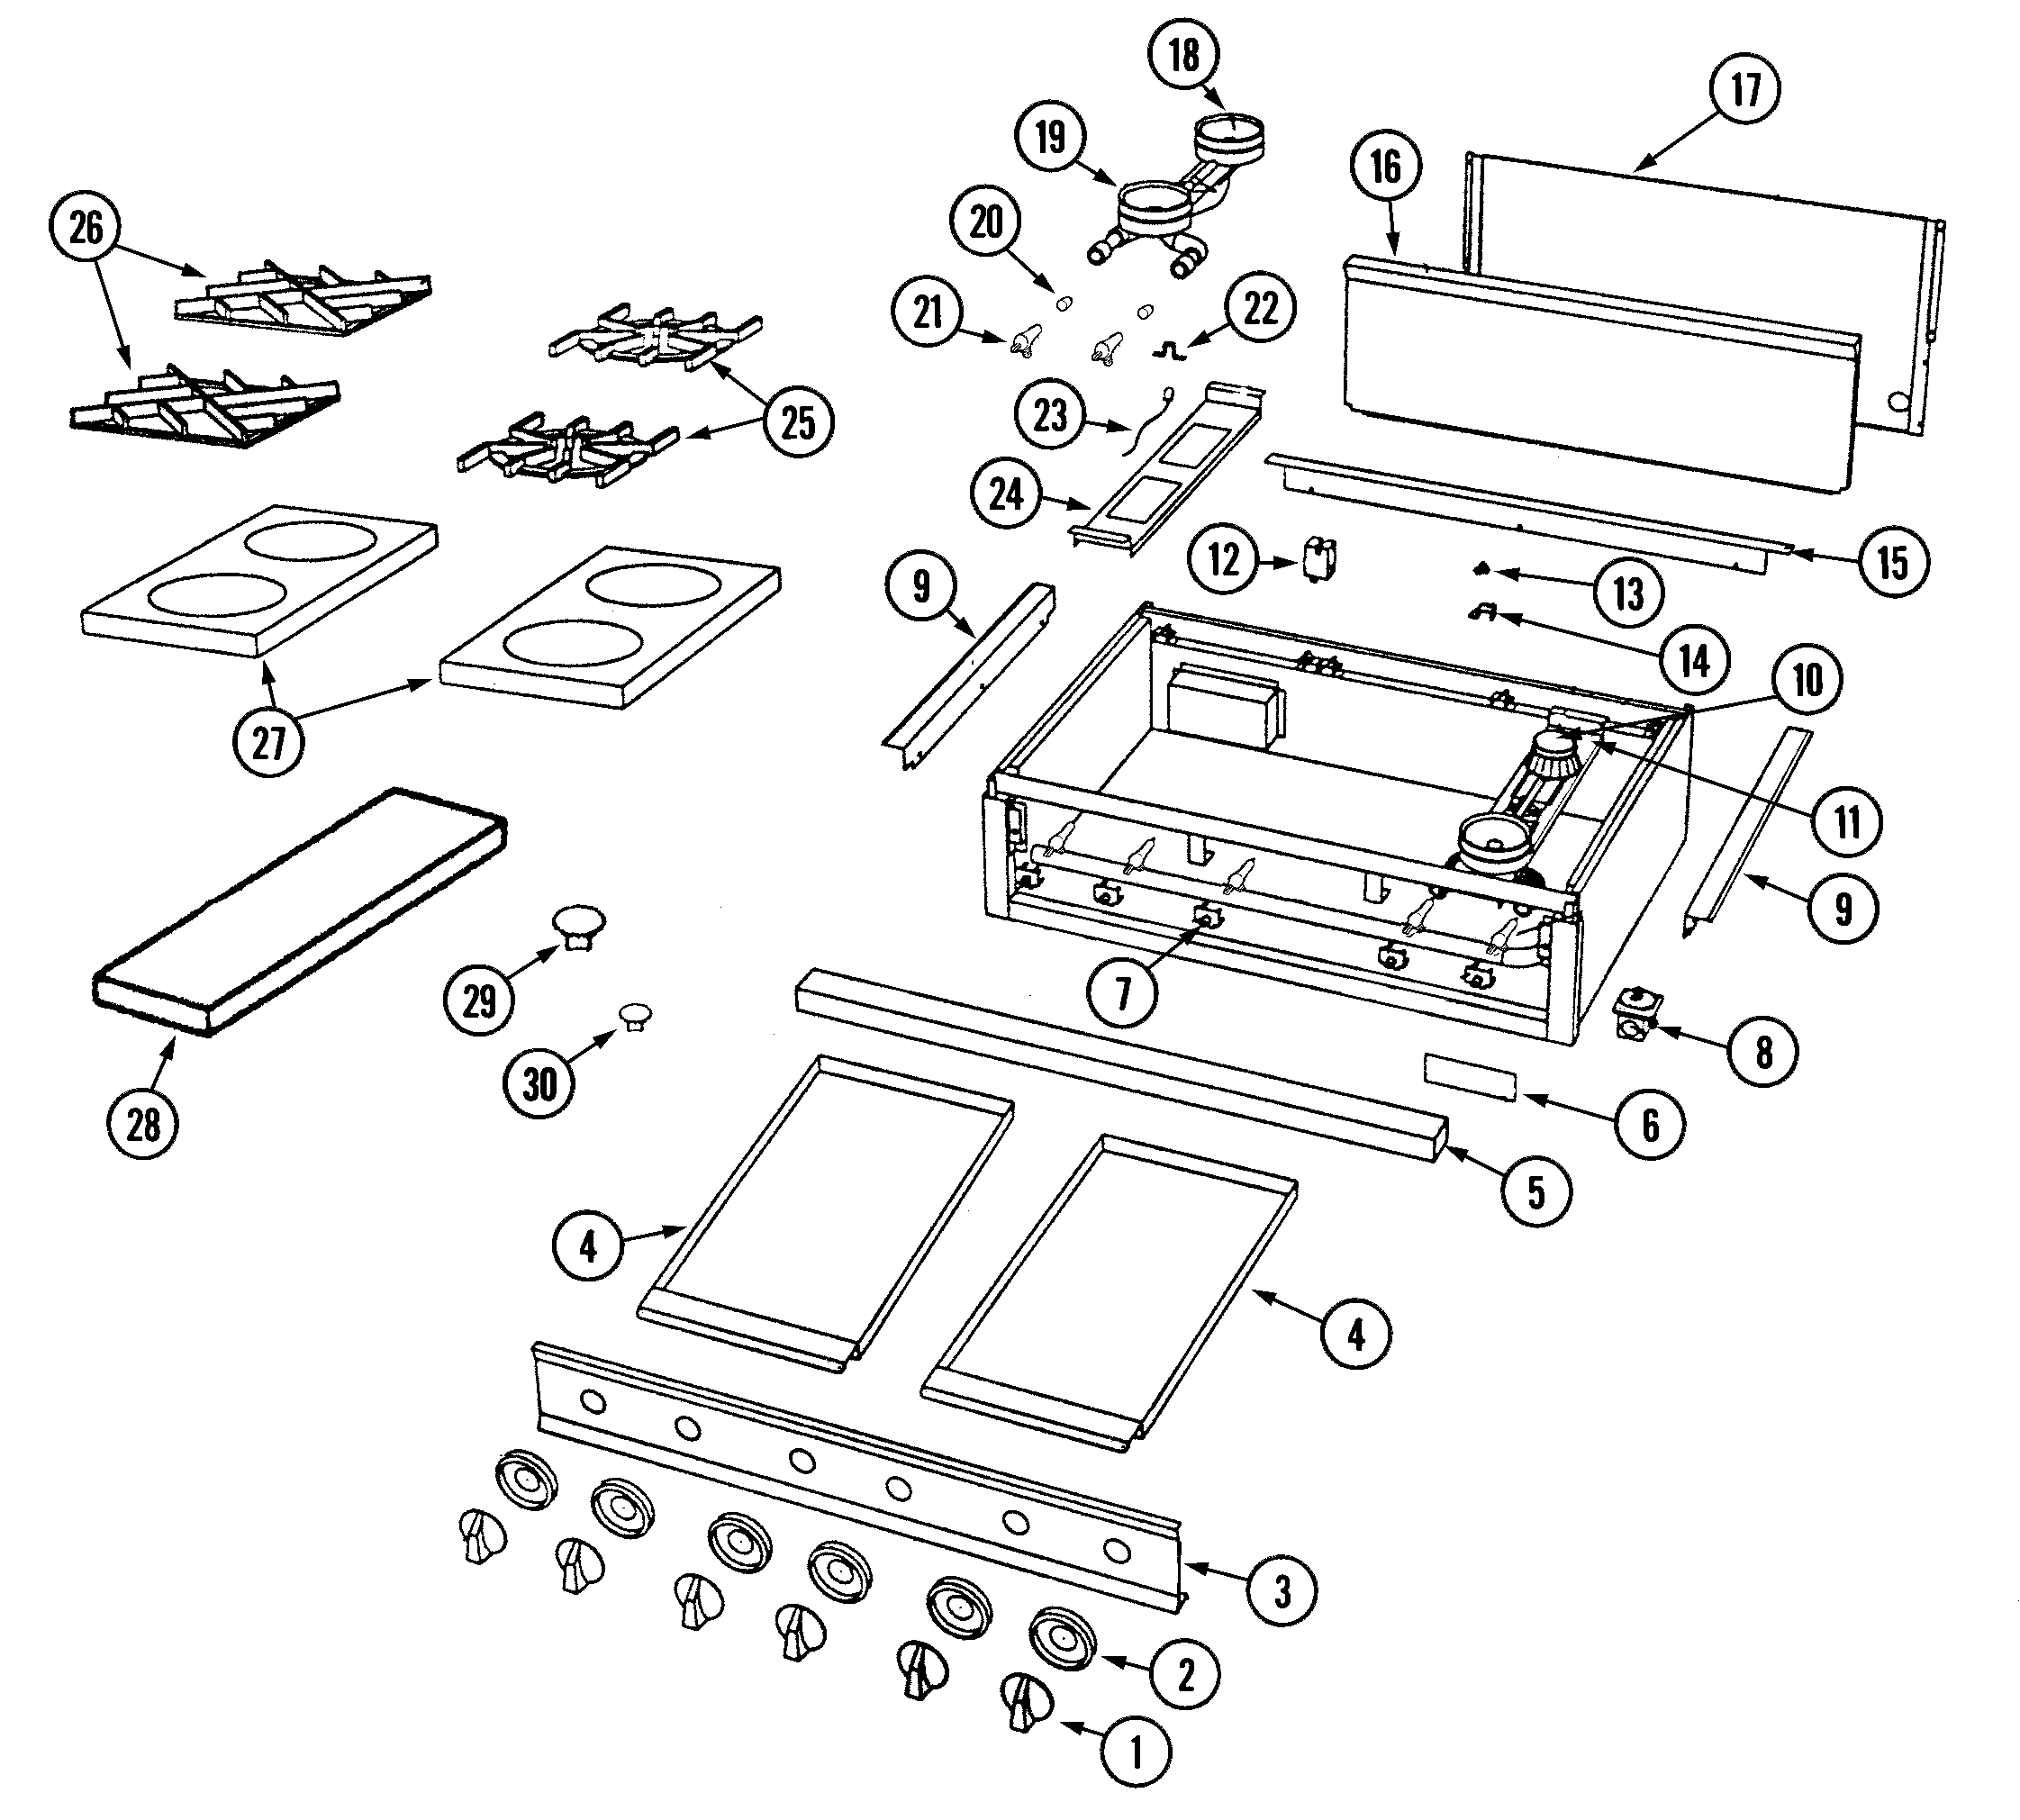 Dynasty DCT488 top assembly/gas controls diagram